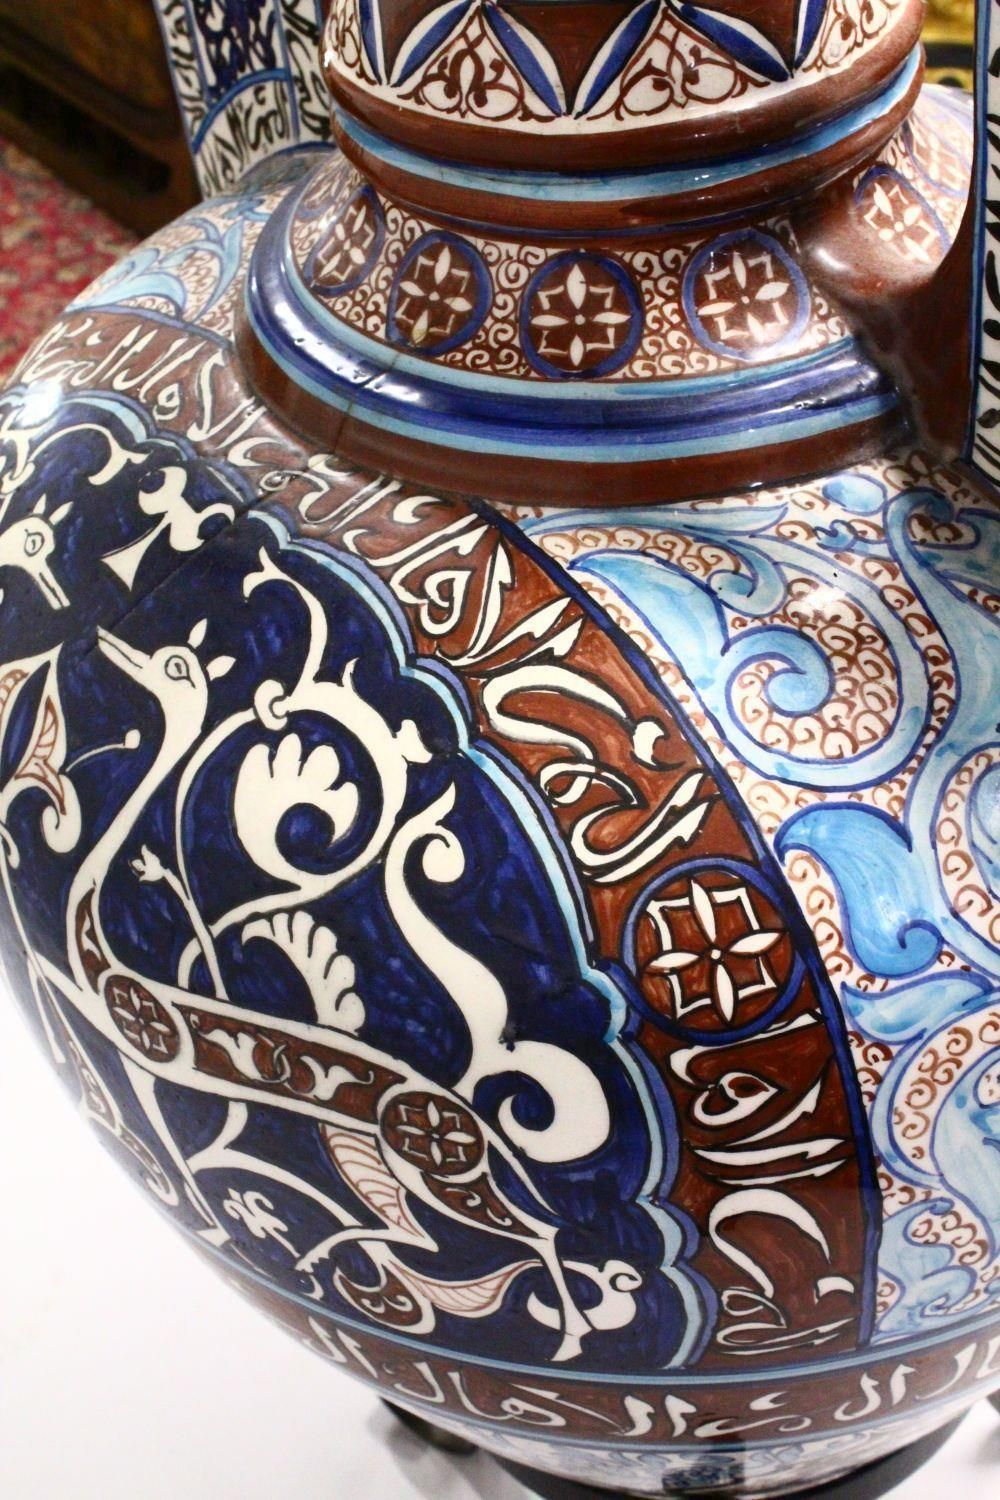 A HUGE 19TH CENTURY ISLAMIC HISPANO MORESQUE POTTERY ALHAMBRA STYLE POTTERY VASE & STAND, possibly - Image 8 of 10